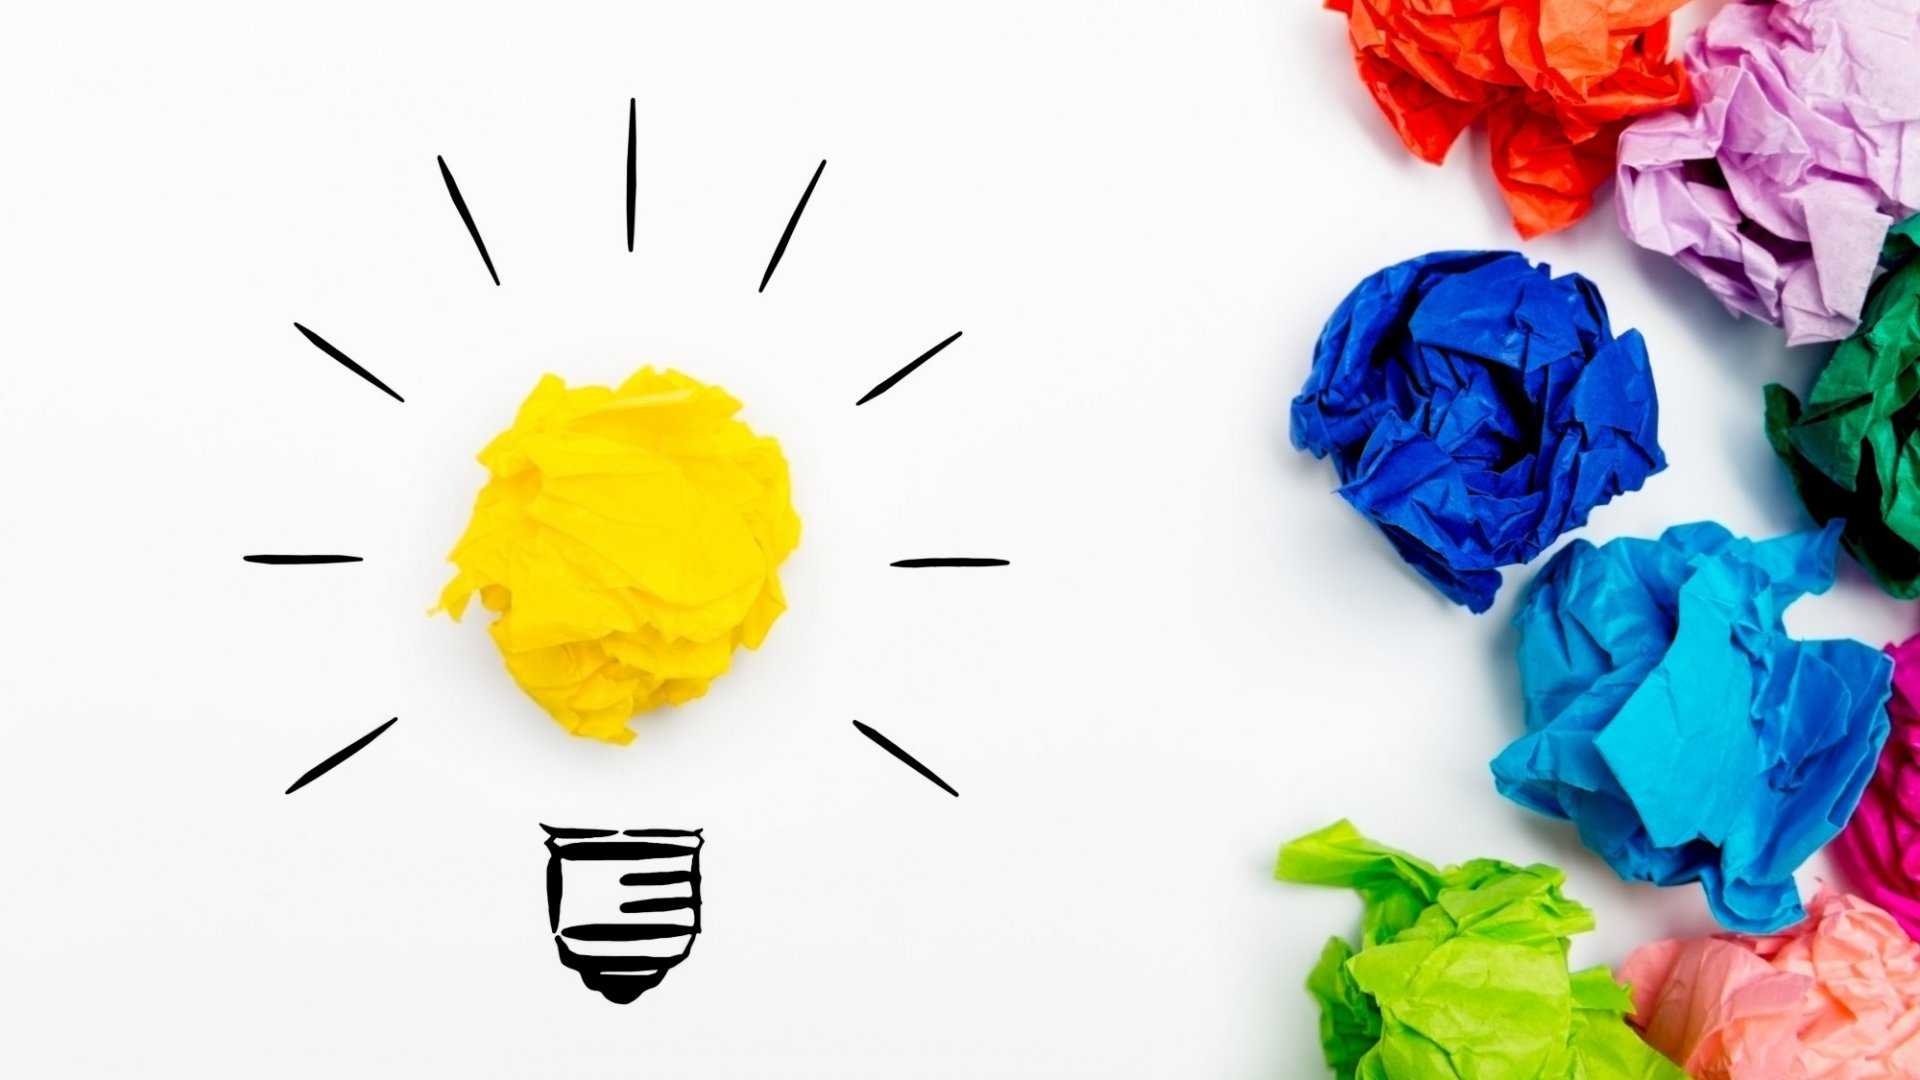 How to Create Successful Business Ideas Without Epiphanies